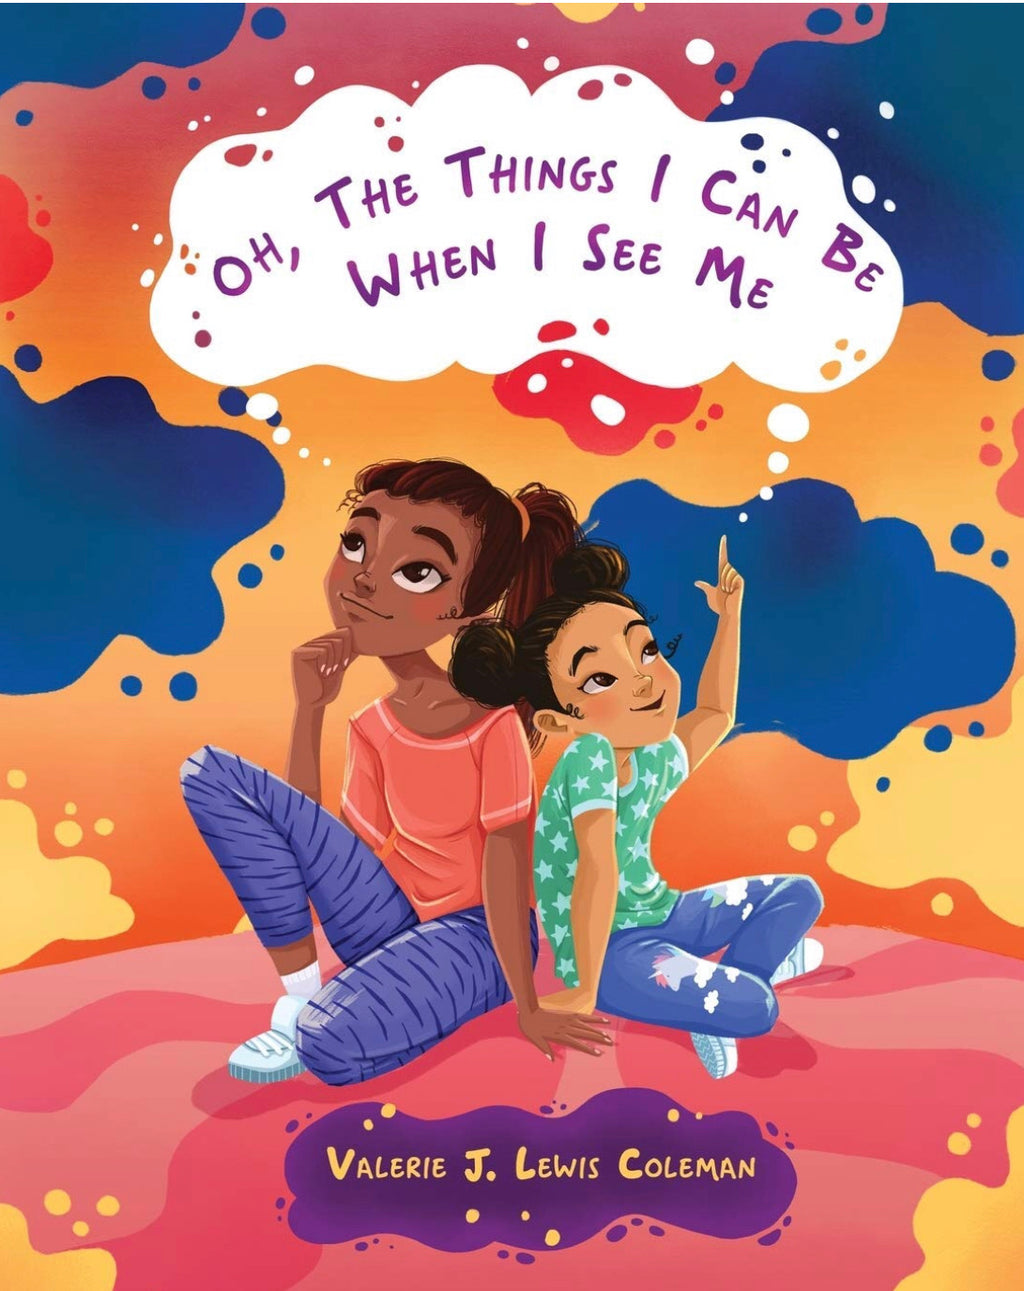 Oh, The Things I Can Be When I See Me - Paperback